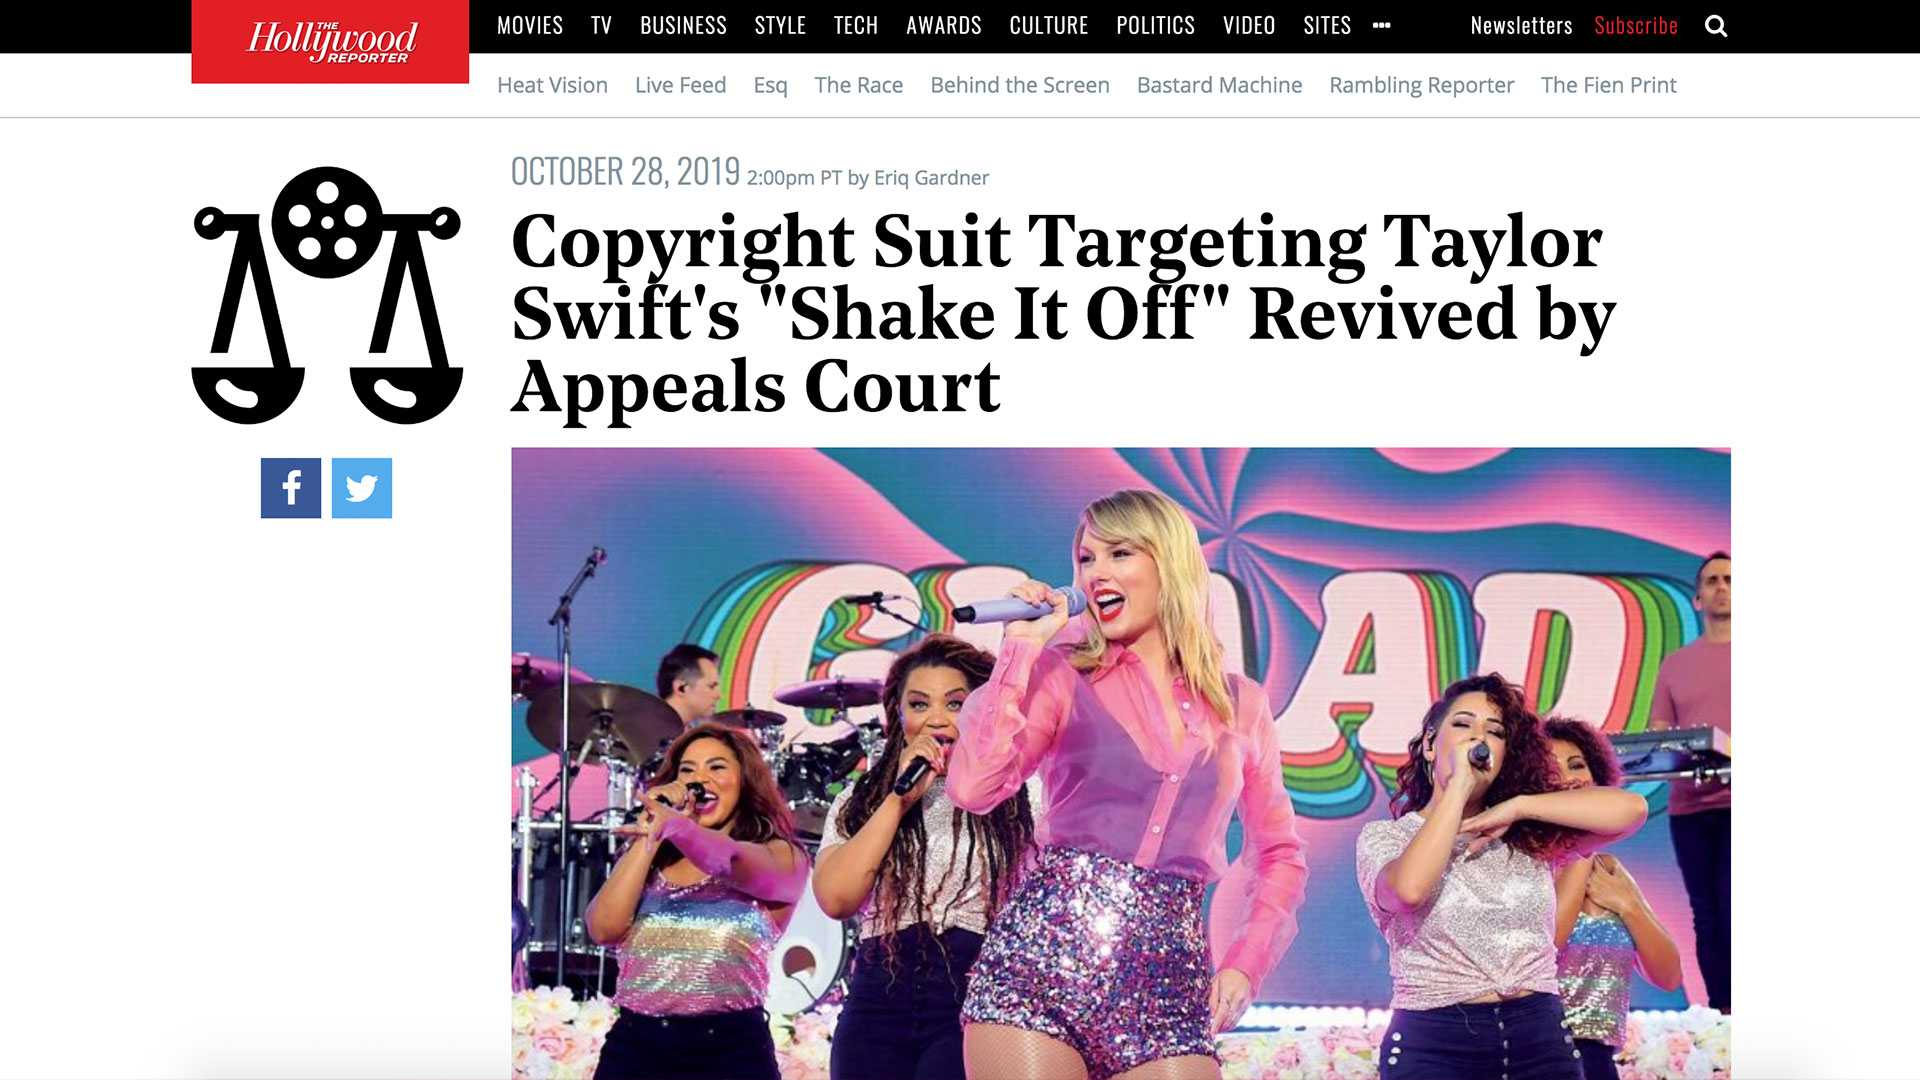 """Fairness Rocks News Copyright Suit Targeting Taylor Swift's """"Shake It Off"""" Revived by Appeals Court"""